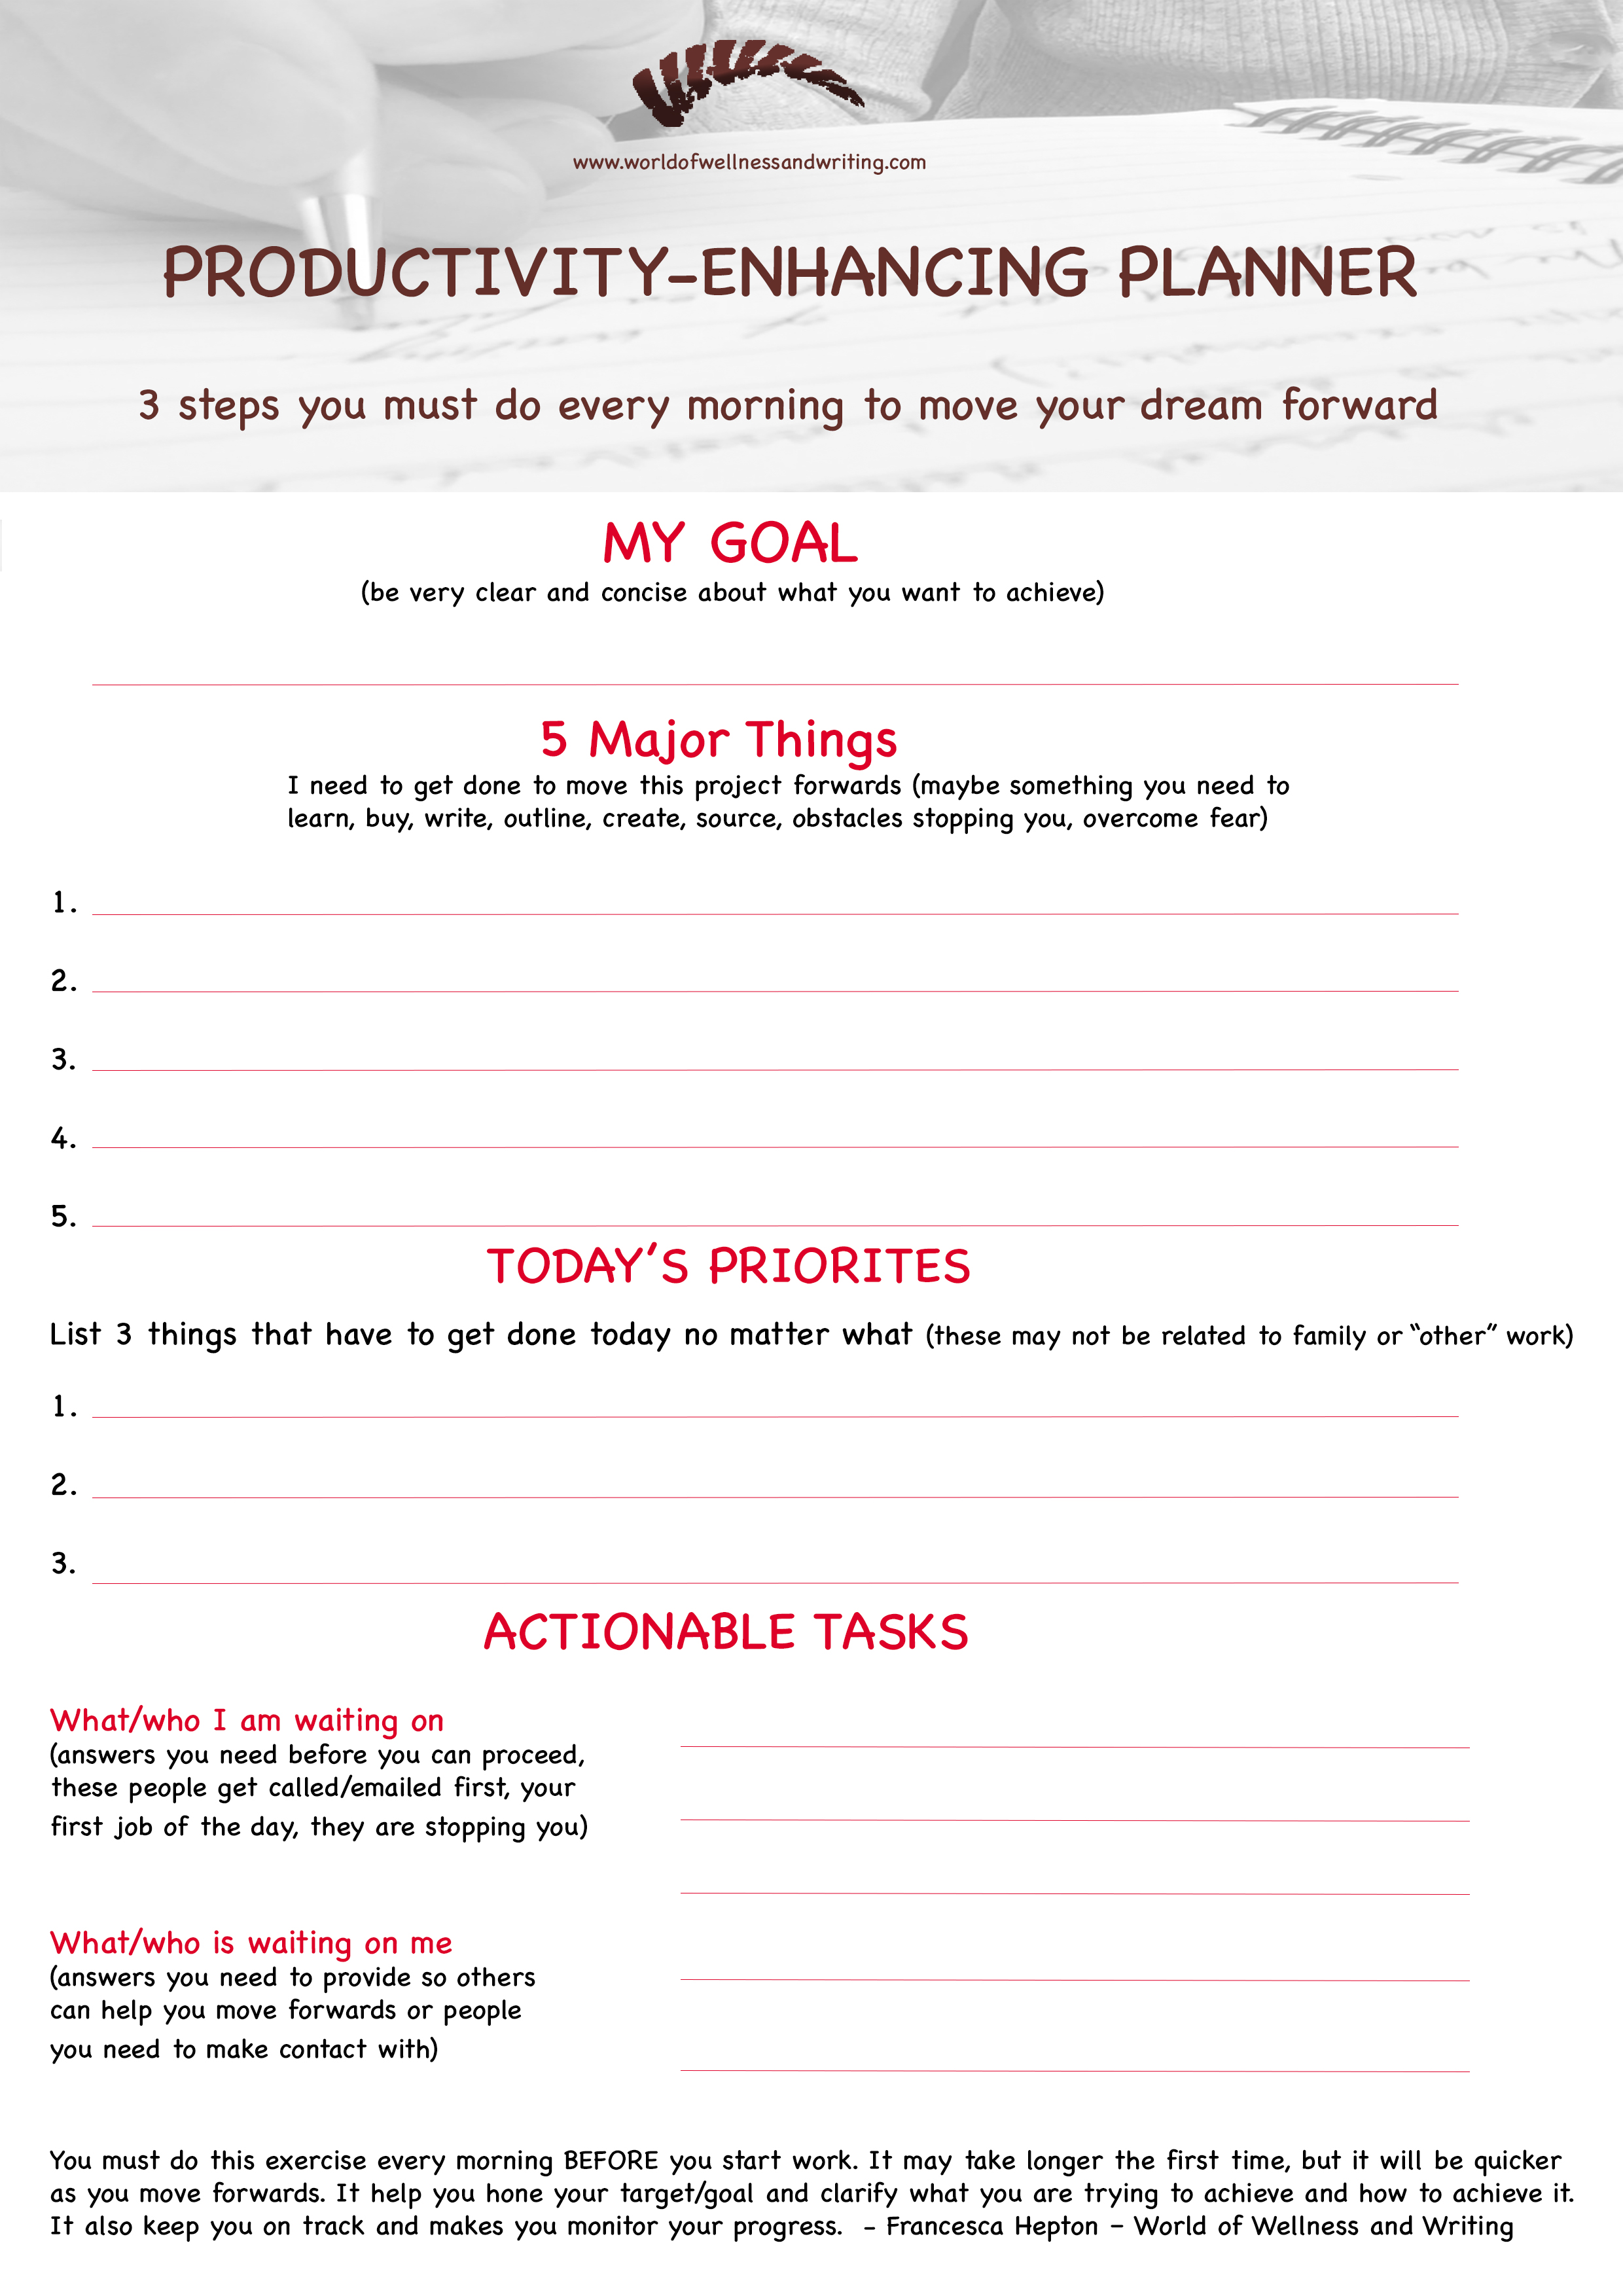 FREE Daily Planner to Drive Your Productivity